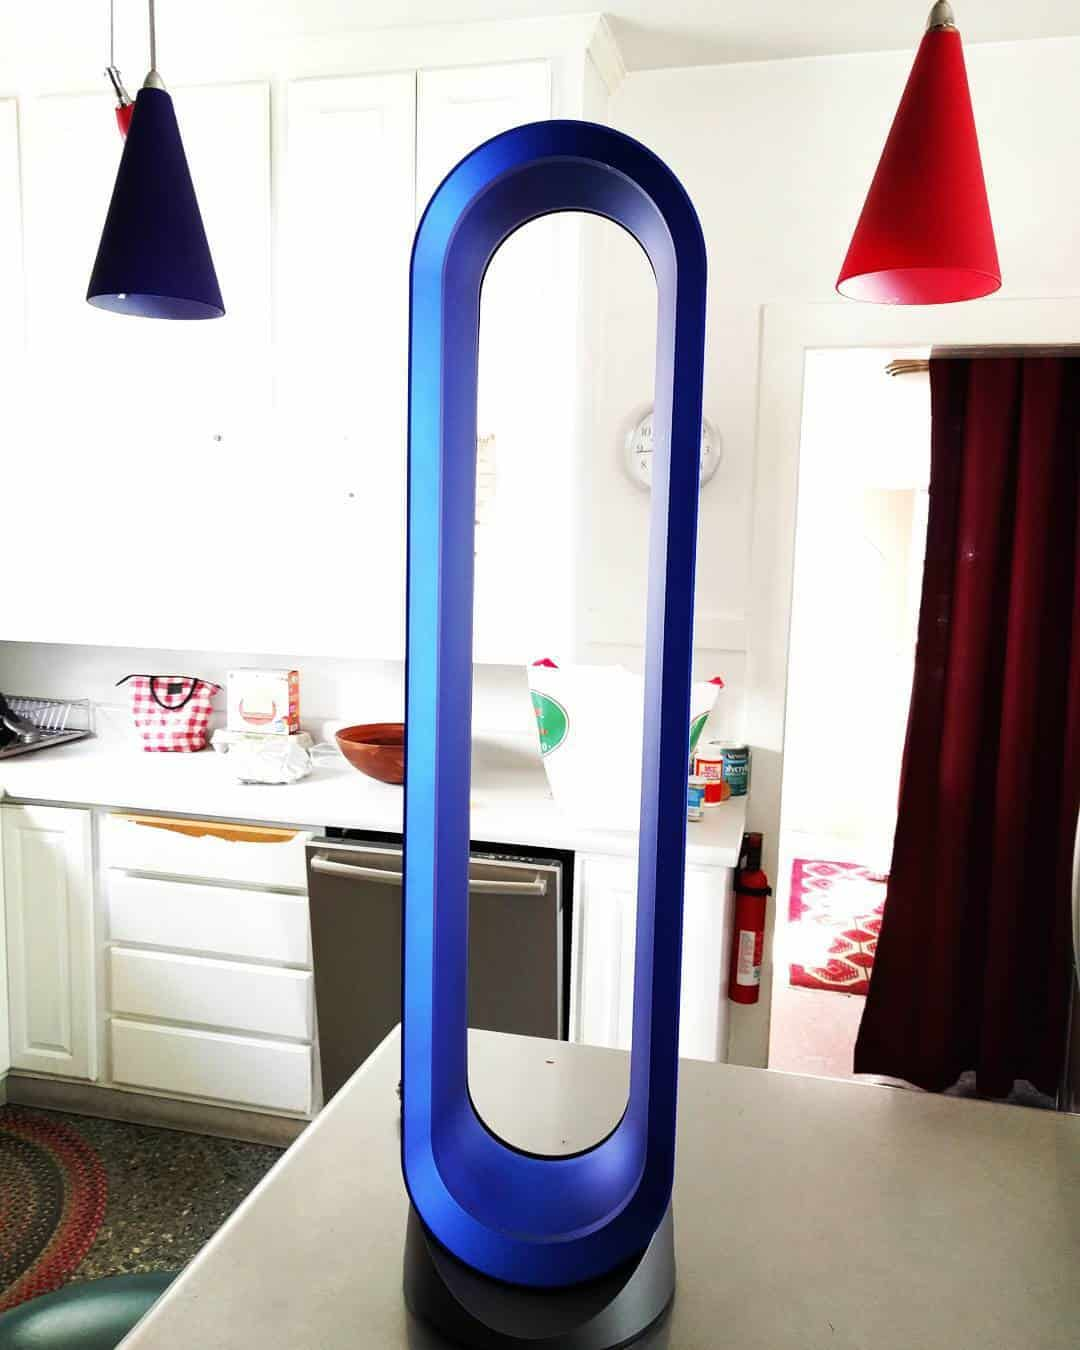 Blue Dyson fan in a living room #towerFan #fan #fans #whatfans #dyson #homeDecor #interiorDesign #livingRoom